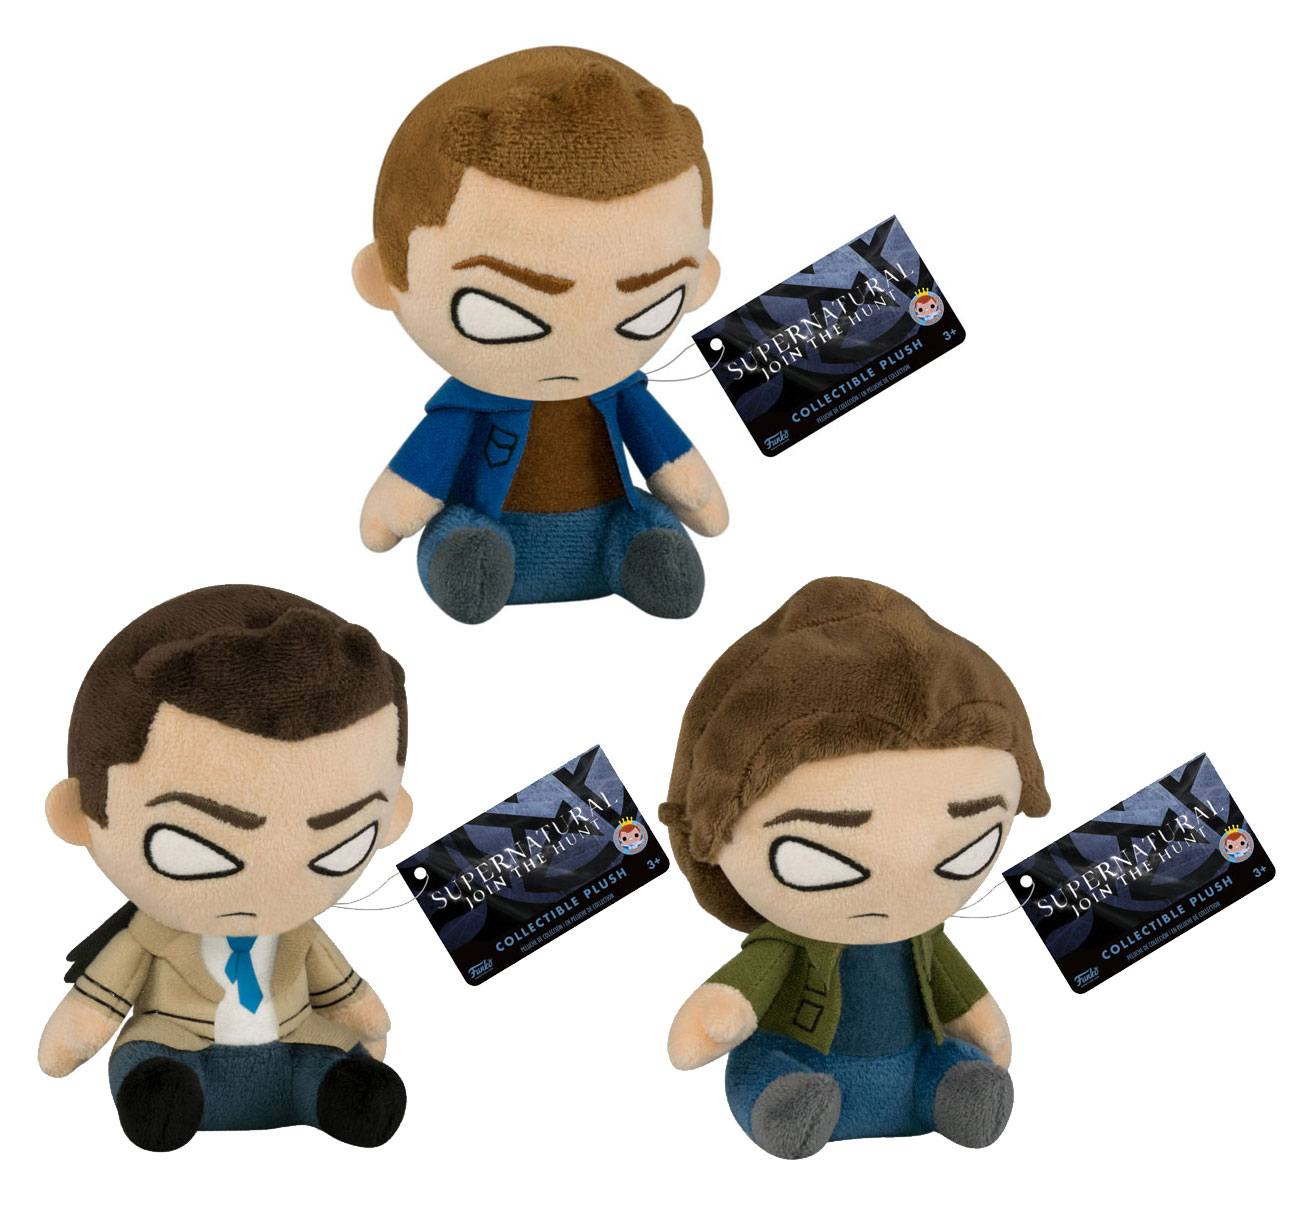 Supernatural Mopeez Plush Figure 12 cm Display (12)